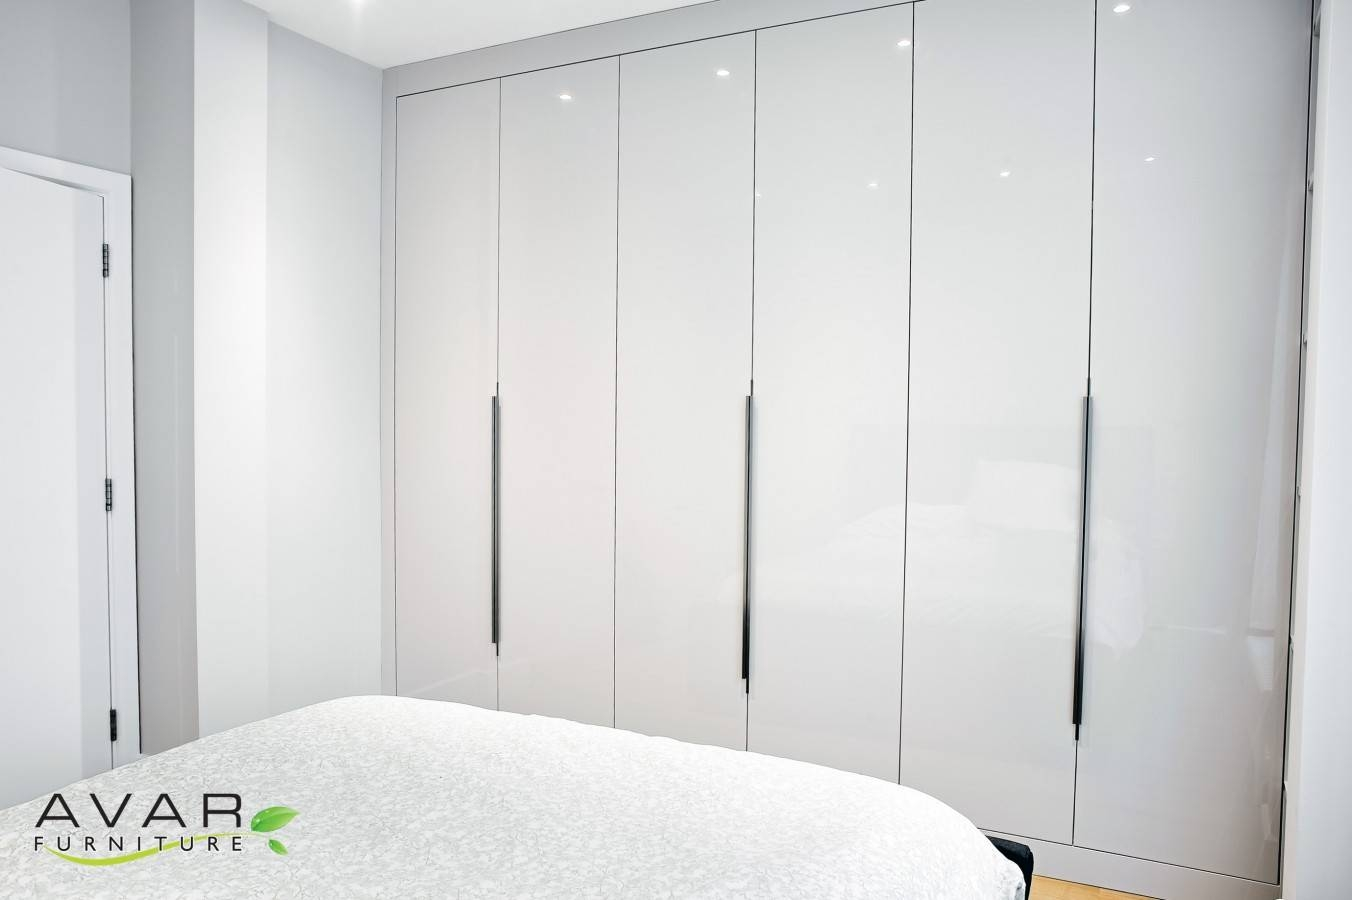 Ƹӝʒ Fitted Wardrobe Ideas Gallery 19 | North London, Uk | Avar in High Gloss White Wardrobes (Image 15 of 15)